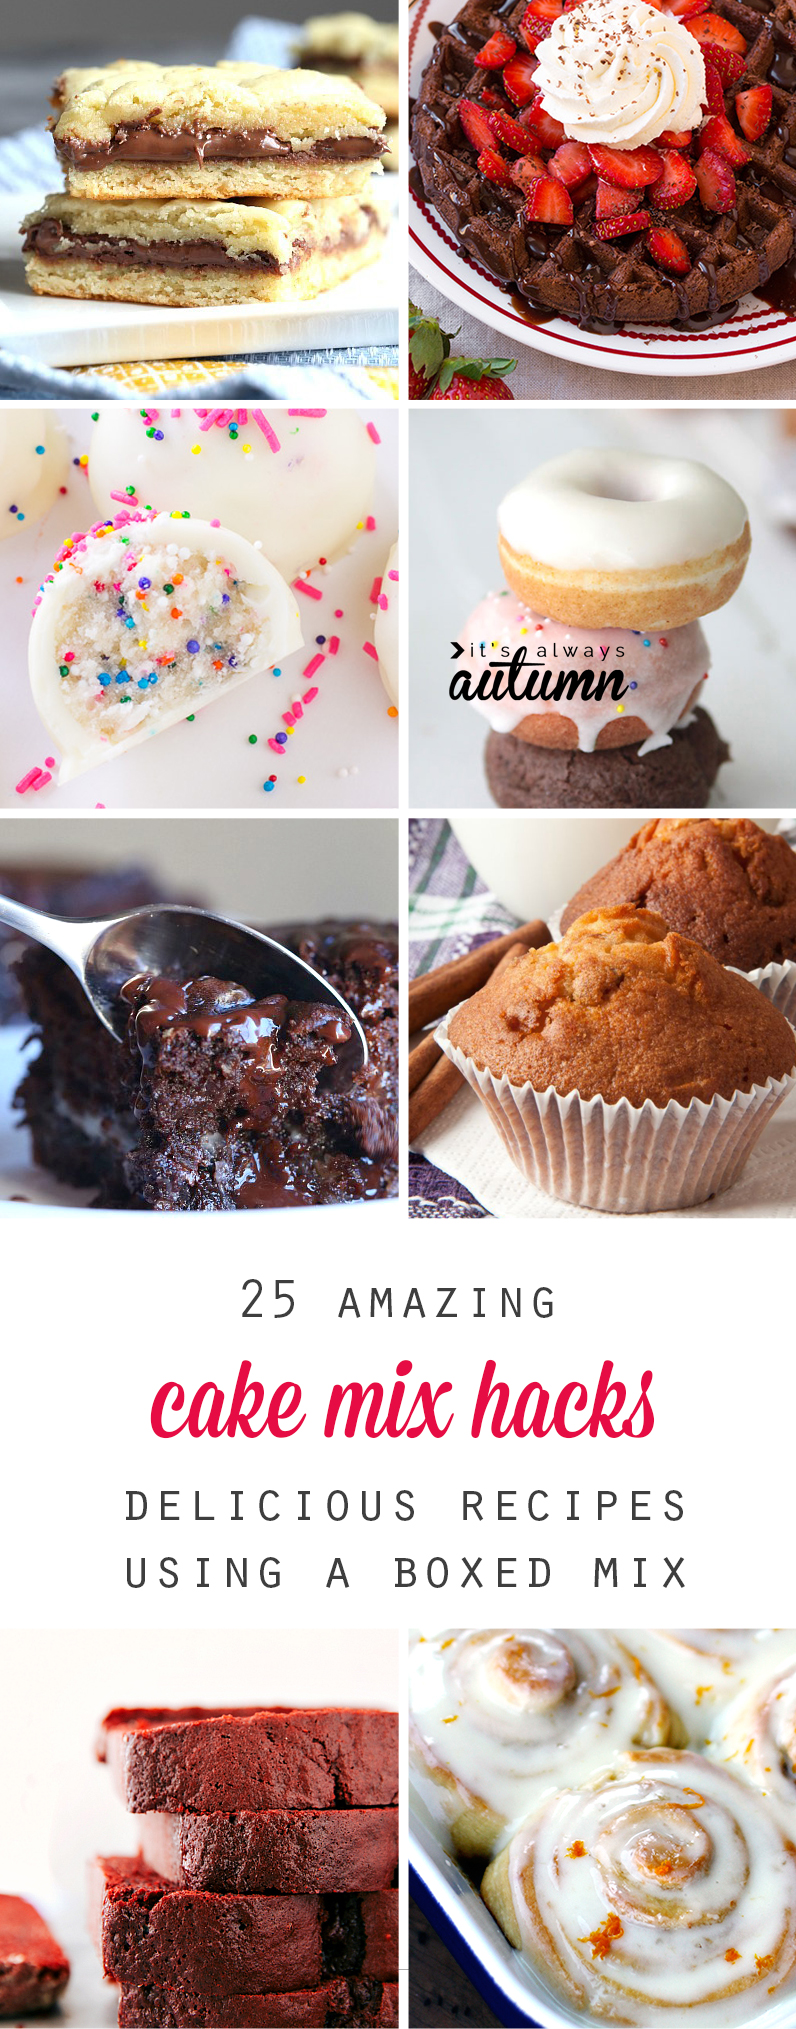 Cake mix hacks! 25 amazing easy recipes that start with a box cake mix: donuts, bars, waffles, cookies, muffins, truffles, and more